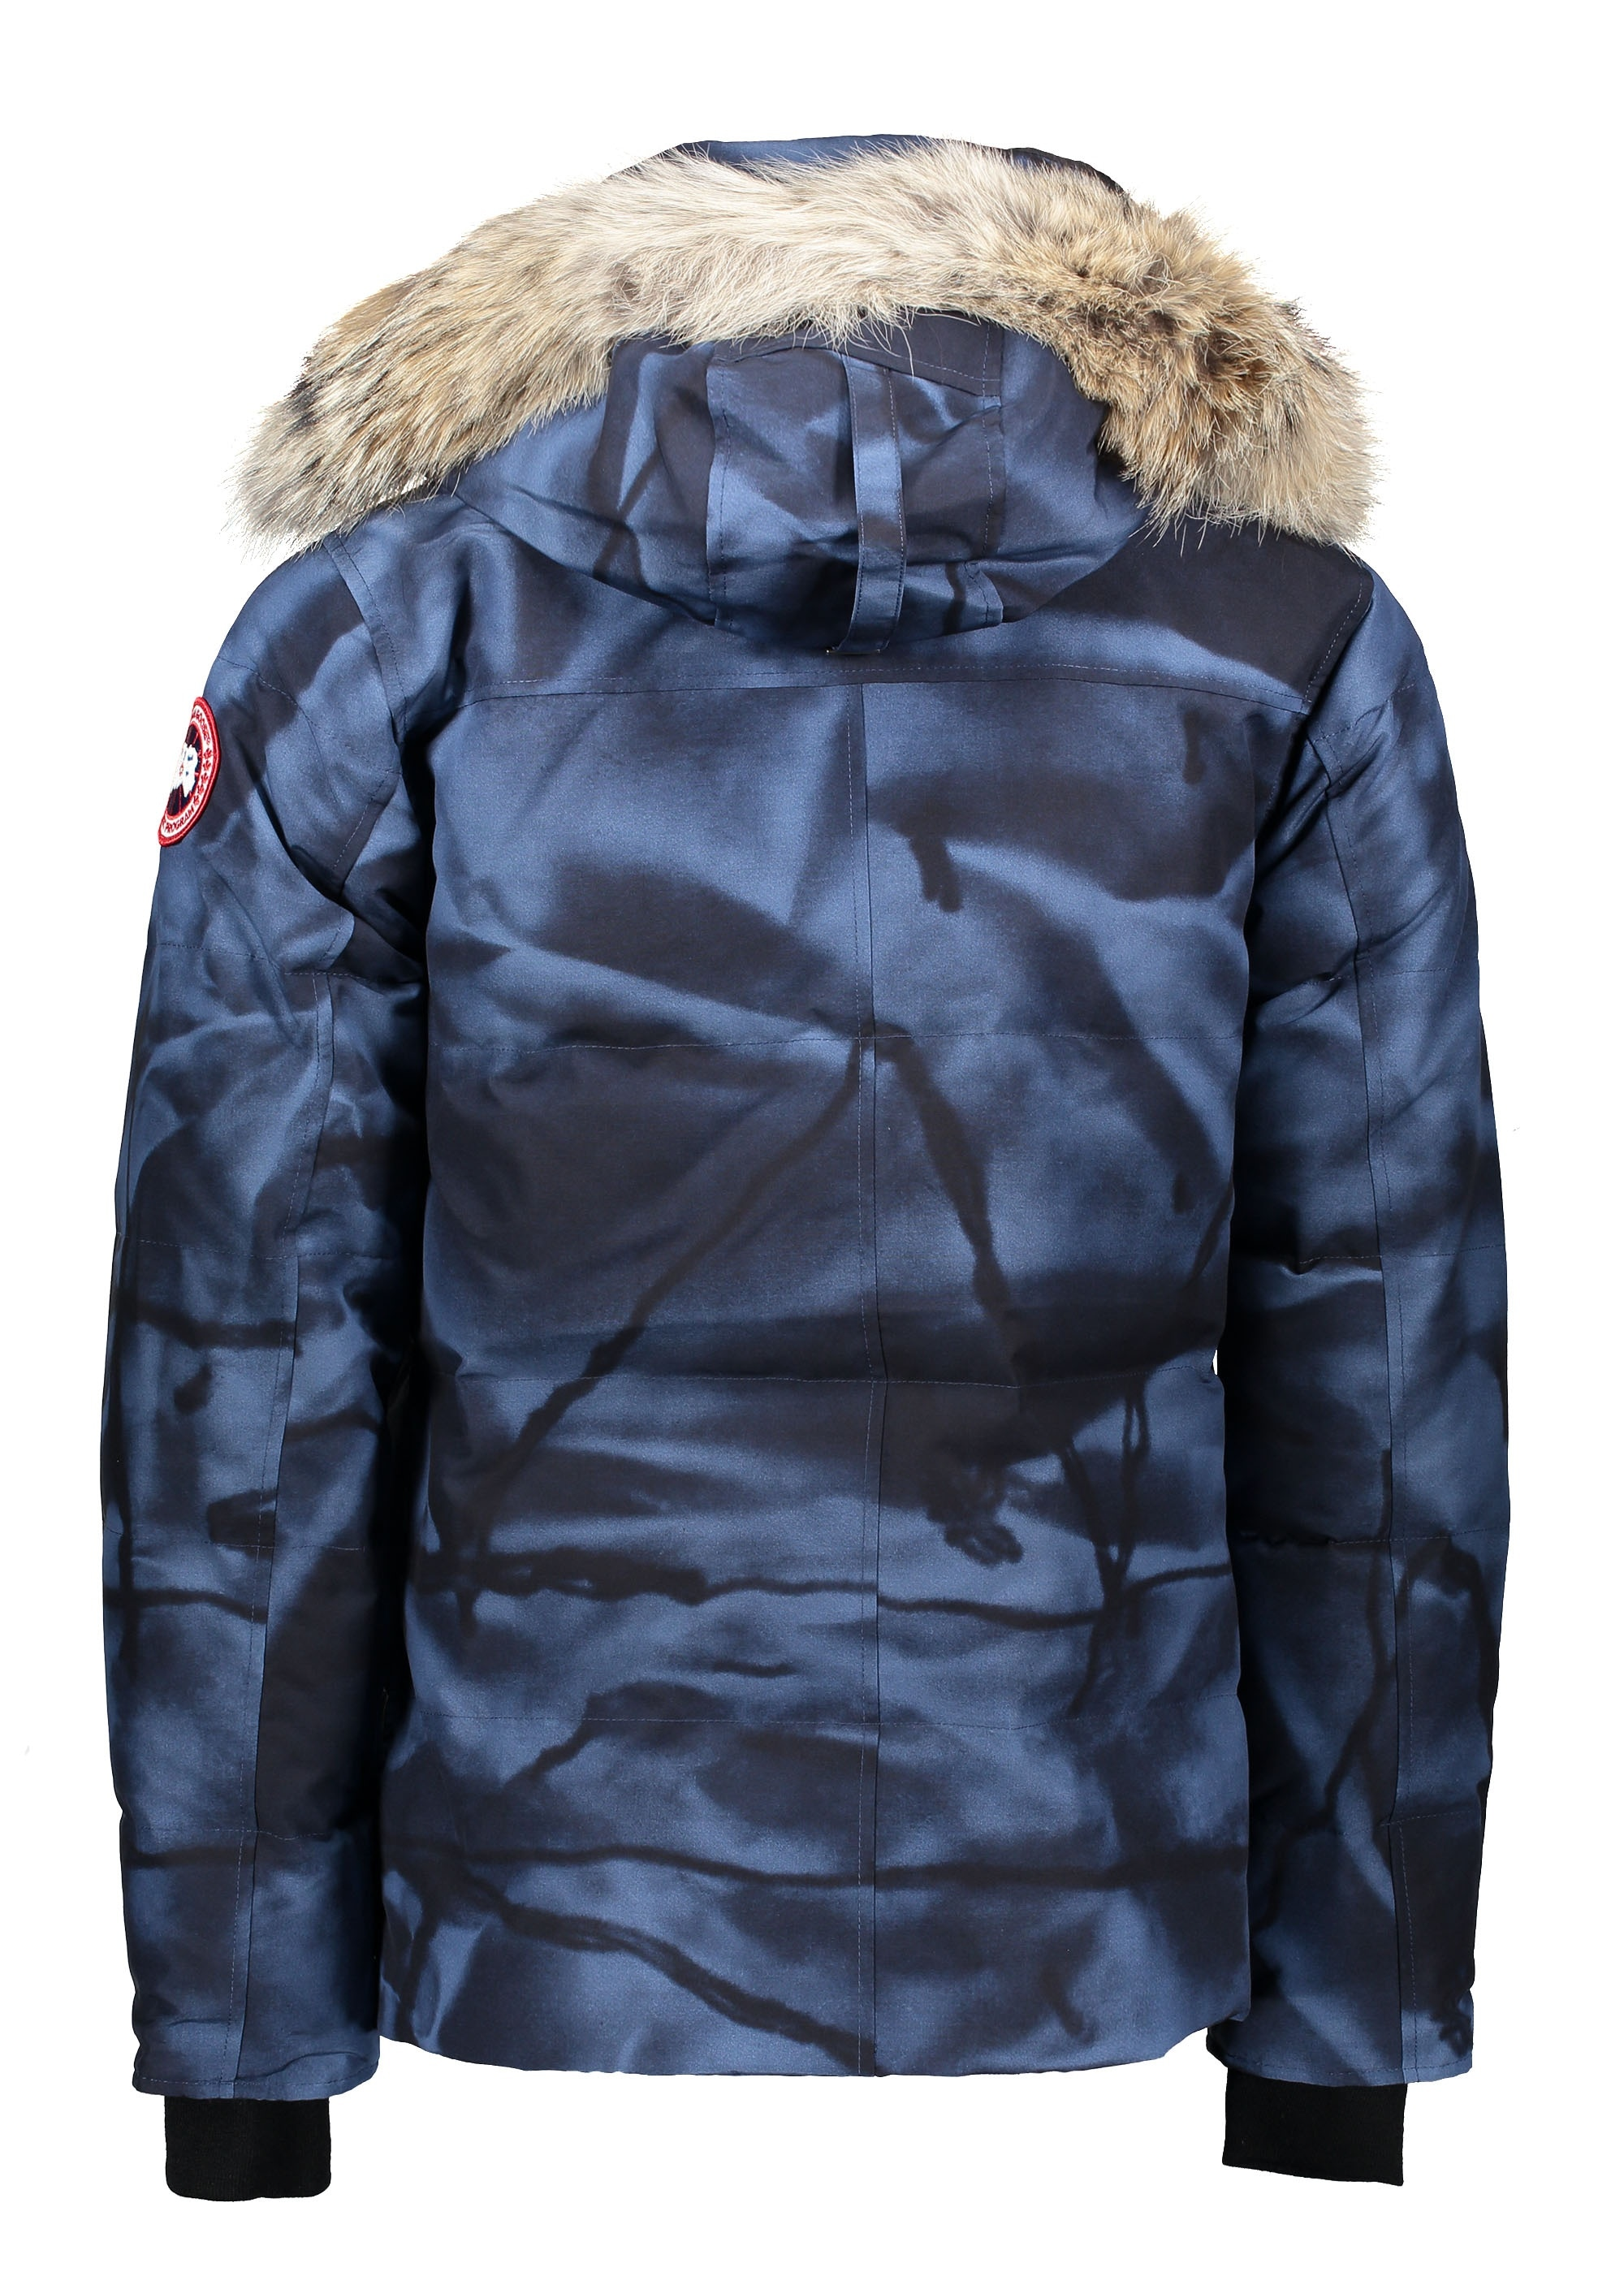 Wyndham Parka - Blue Abstract Camo